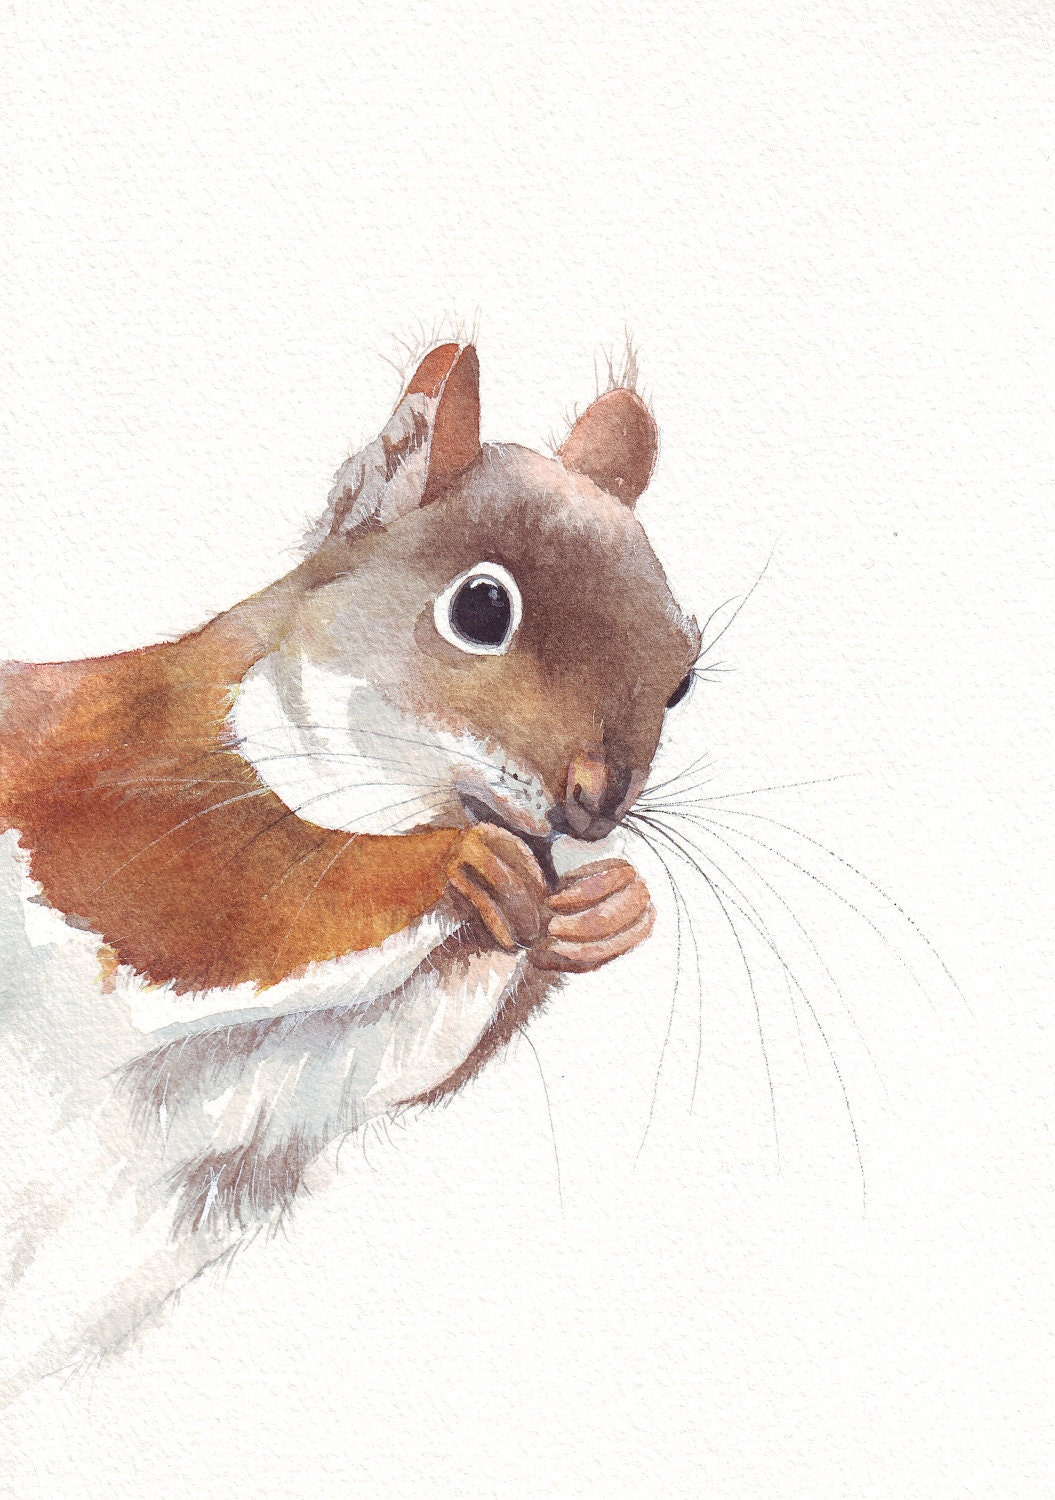 Squirrel art painting No 0071 - animal print of watercolor painting